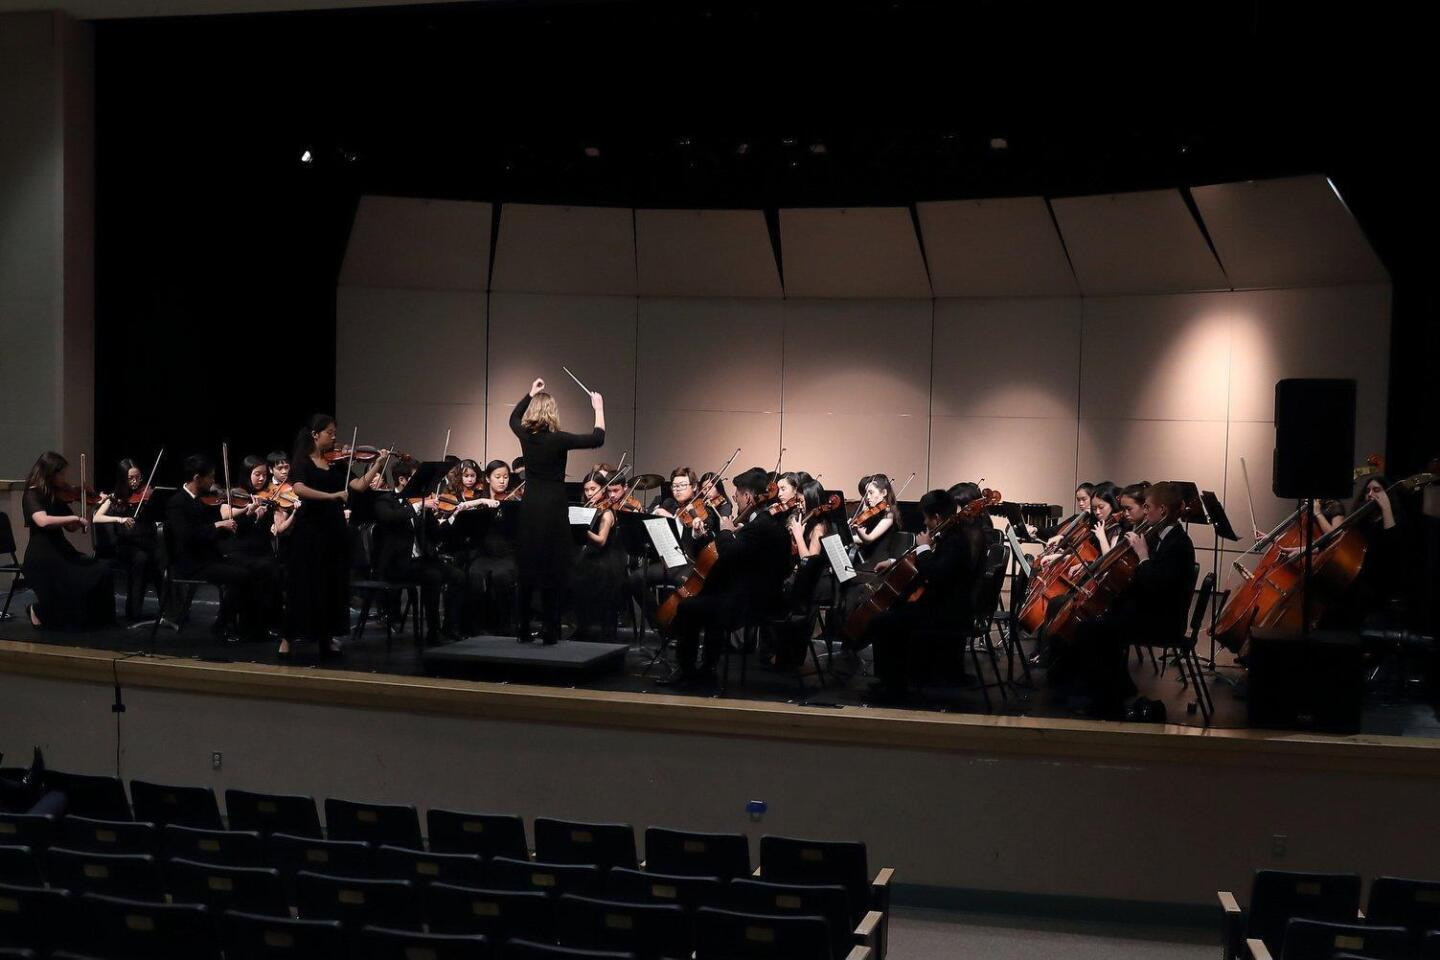 TPHS Advanced Orchestra directed by Amy Gelb